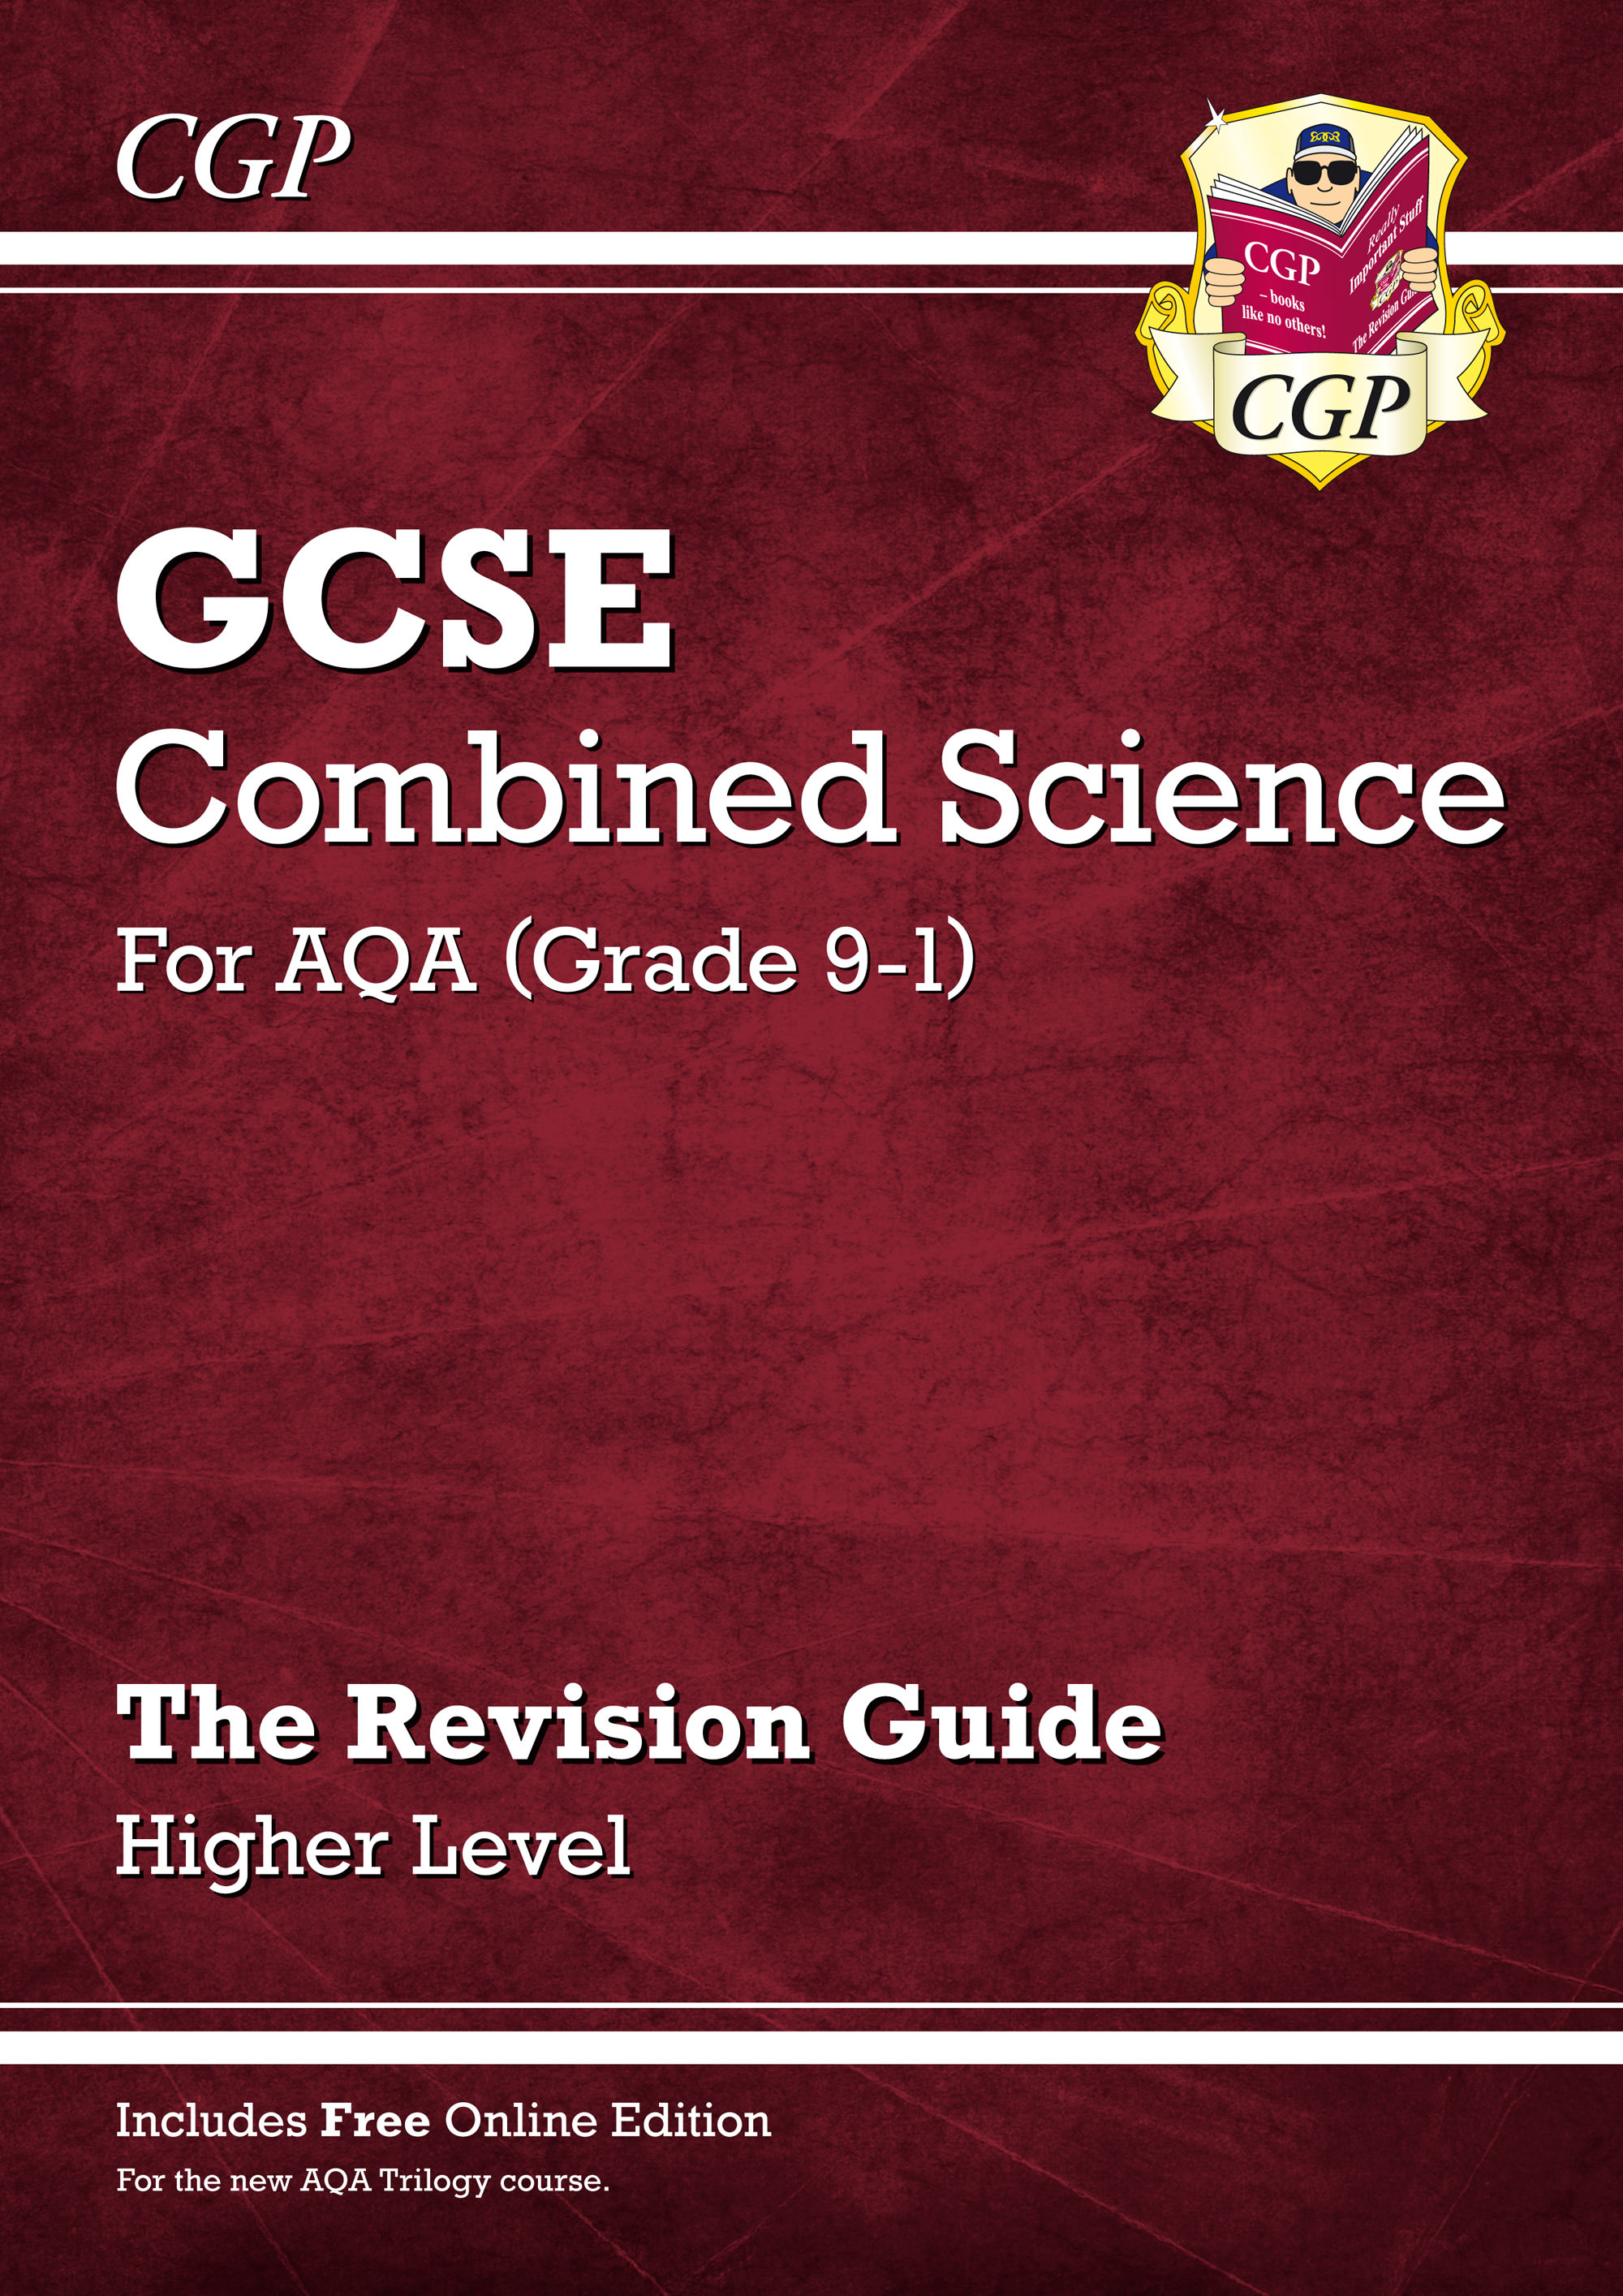 SAHR45 - Grade 9-1 GCSE Combined Science: AQA Revision Guide with Online Edition - Higher